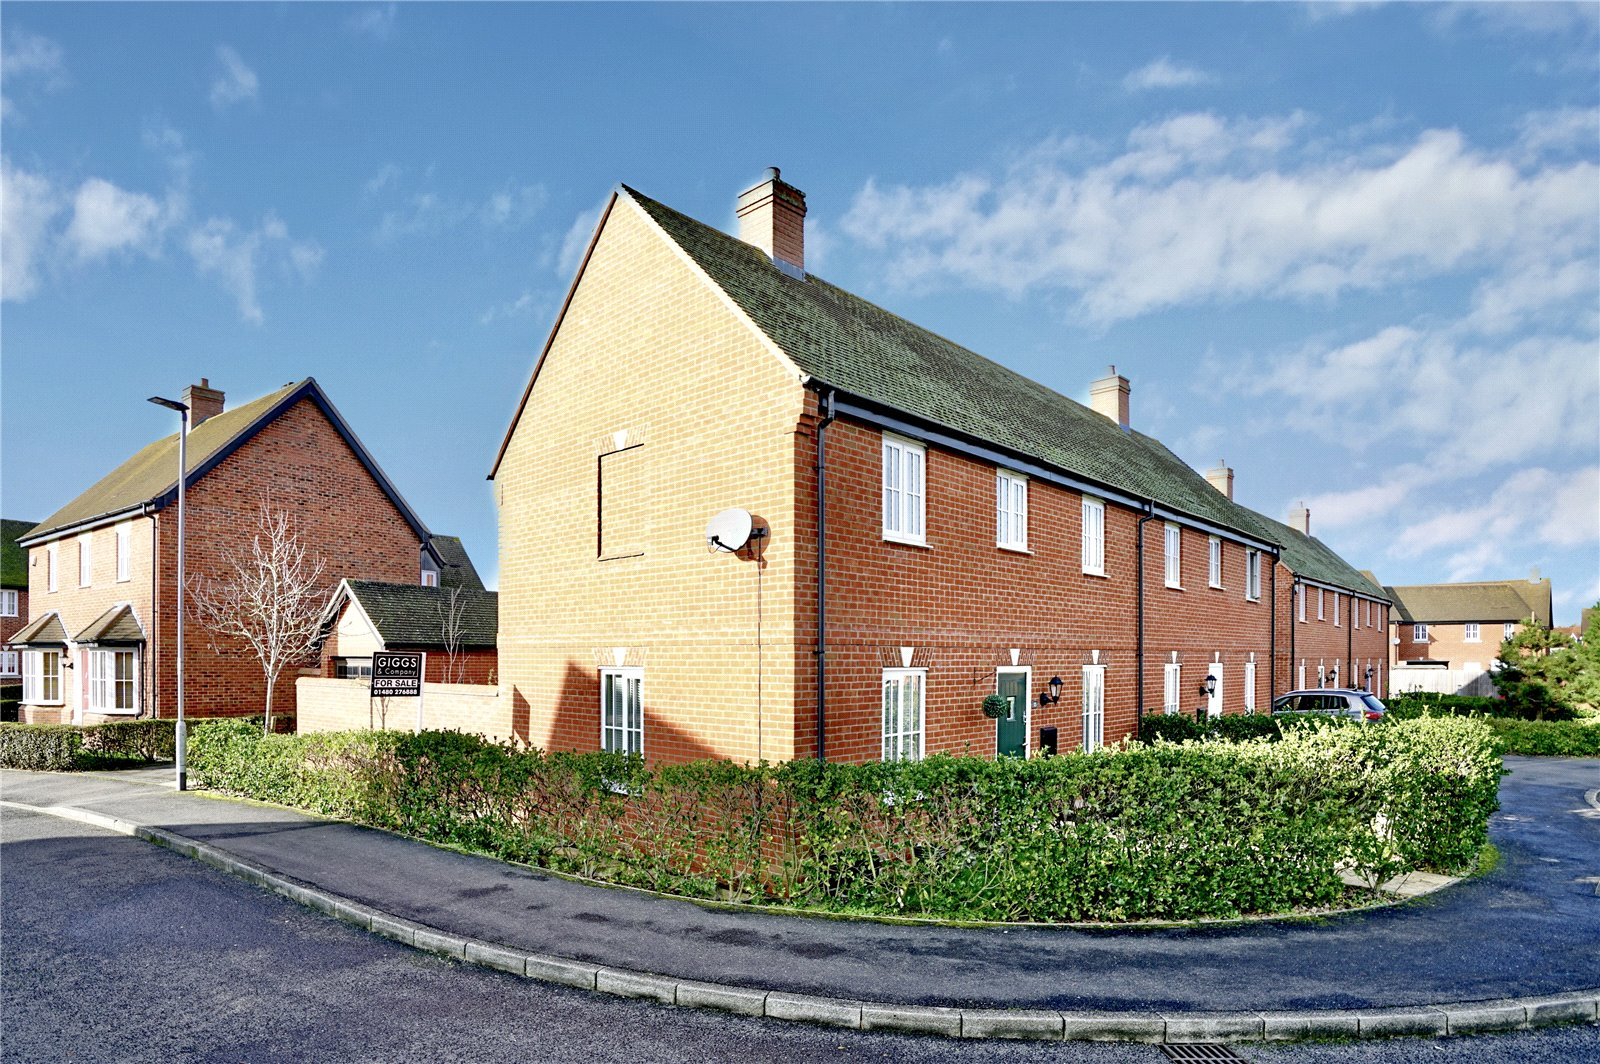 3 bed house for sale in Woodpecker Close, Great Barford - Property Image 1